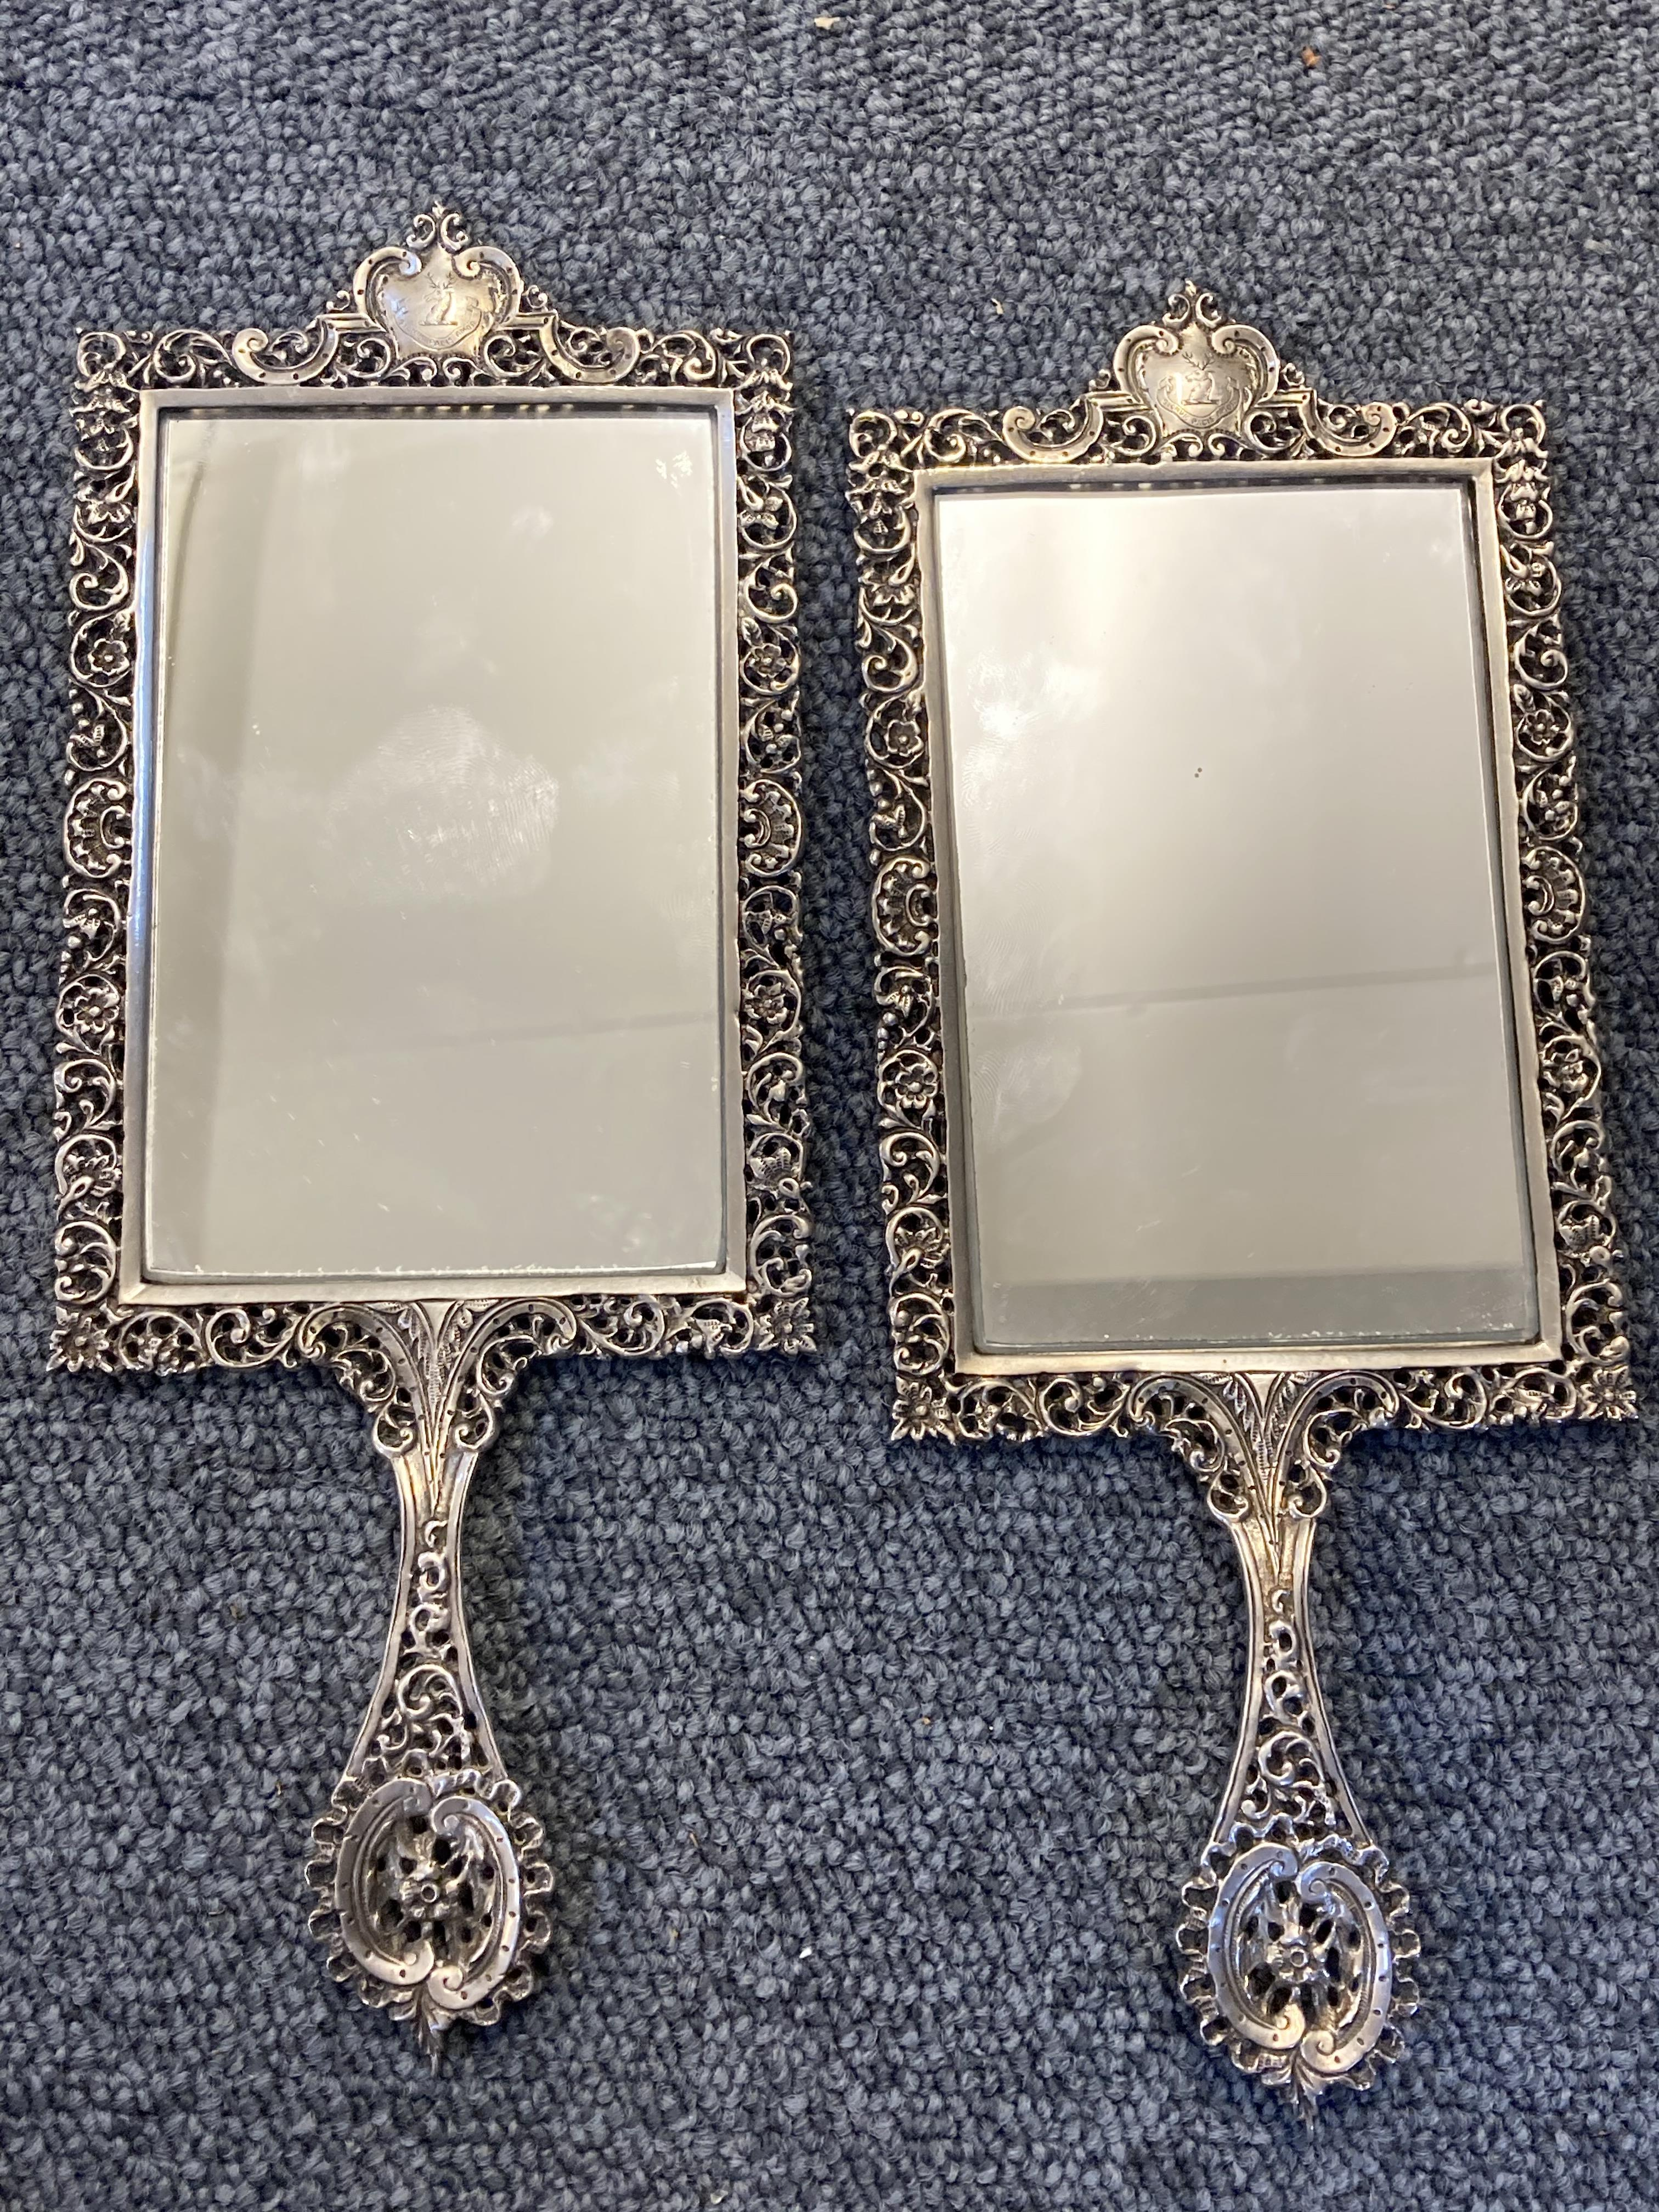 * Mirrors. Pair of Scottish silver hand mirrors by R & W Sorley, Glasgow, 1894 - Image 2 of 10